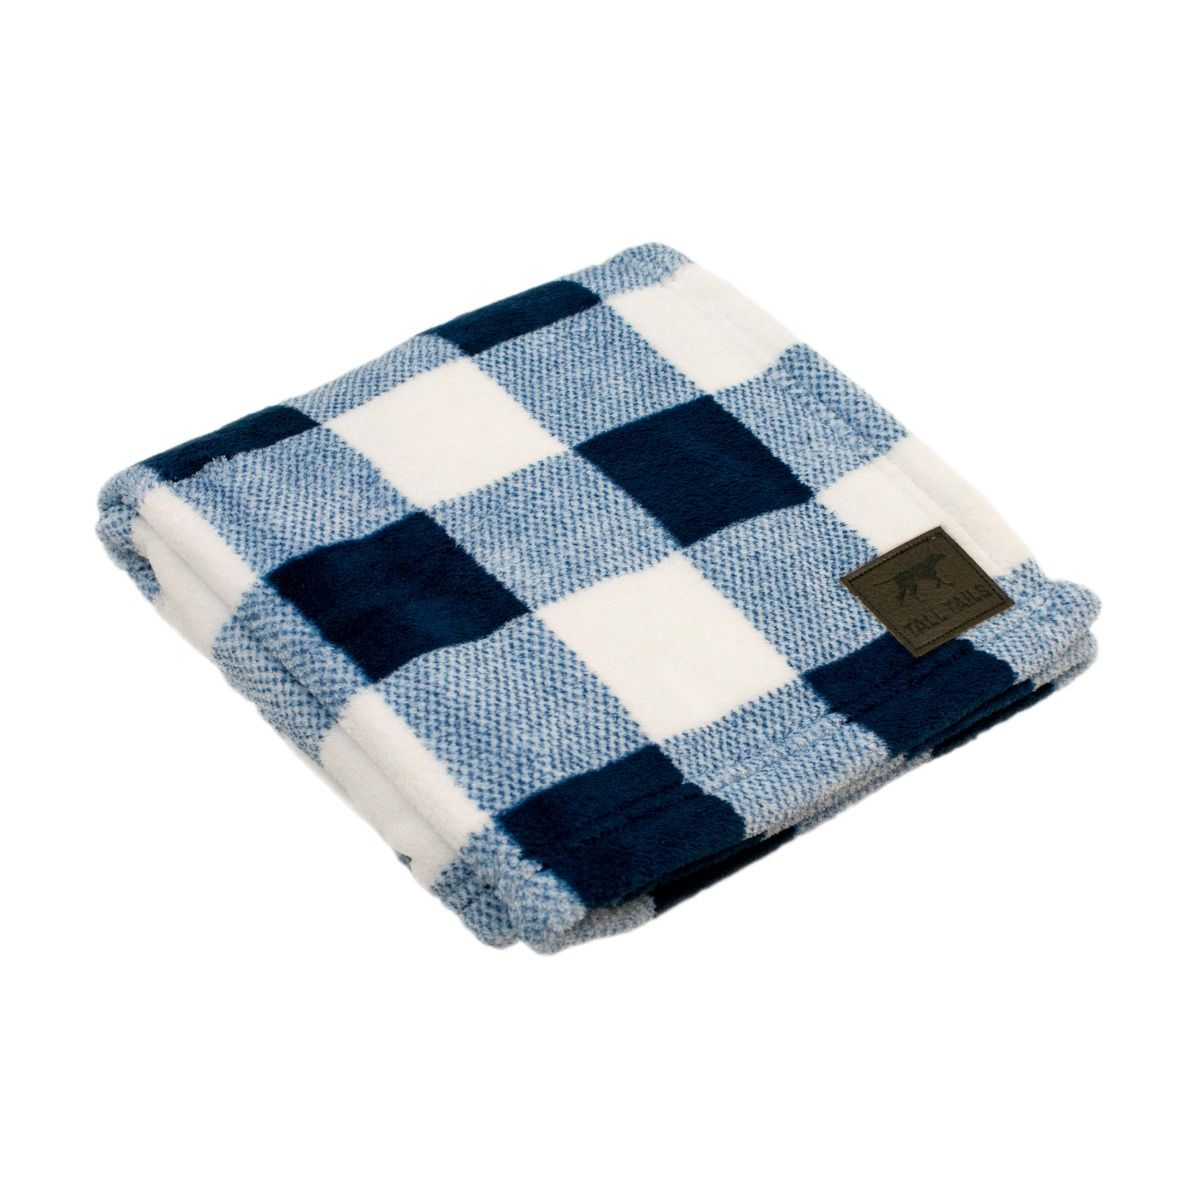 TALL TAILS CABLE NAVY PLAID BLANKET